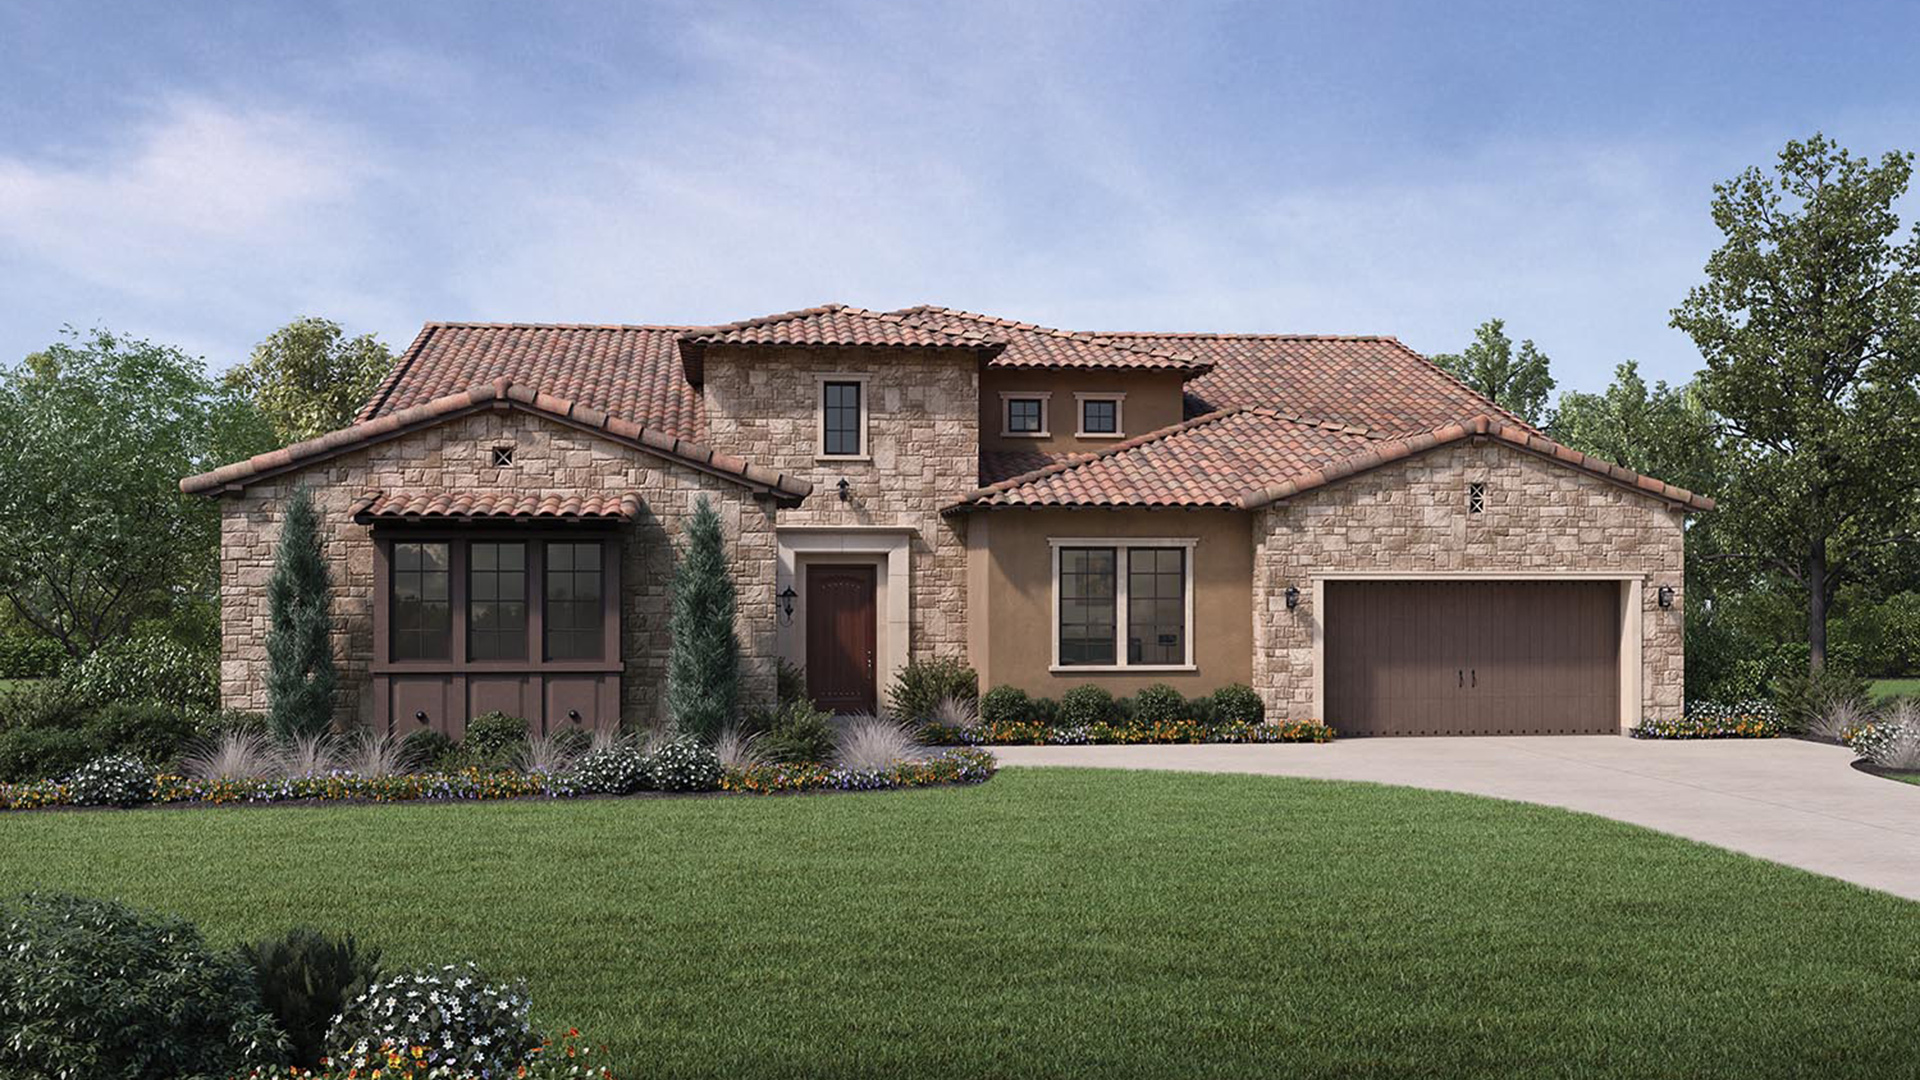 New luxury homes for sale in san diego ca palomar at - 4 bedroom house for sale san diego ...